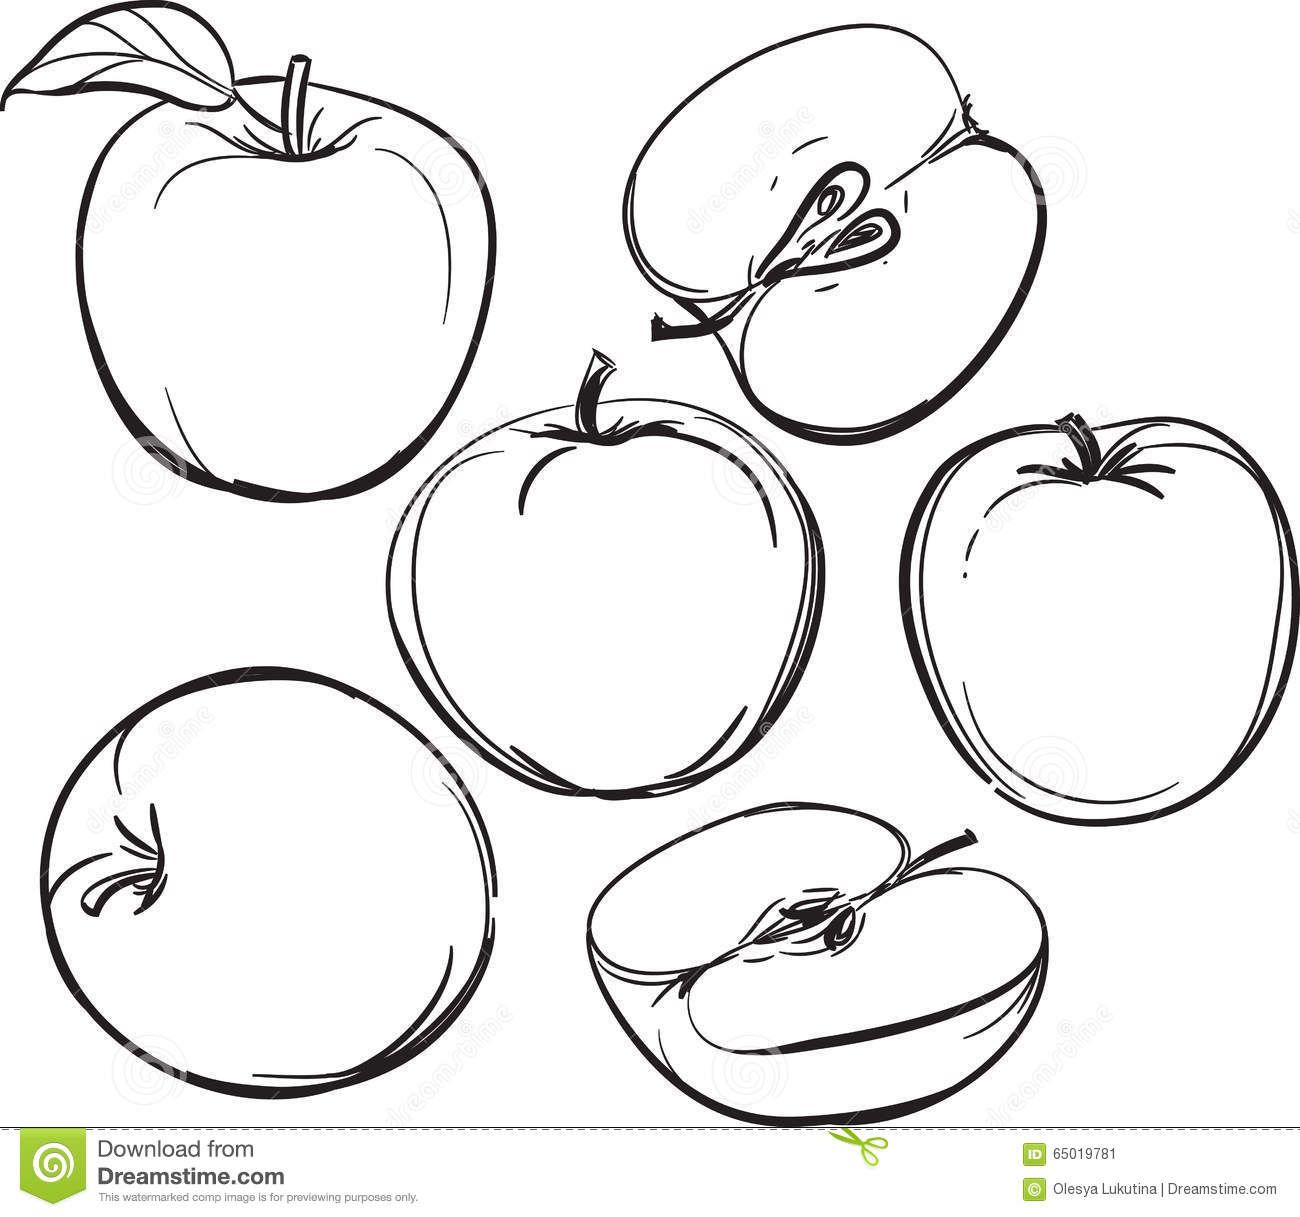 Apple. Line Drawing Of Apples. On A White Background. One